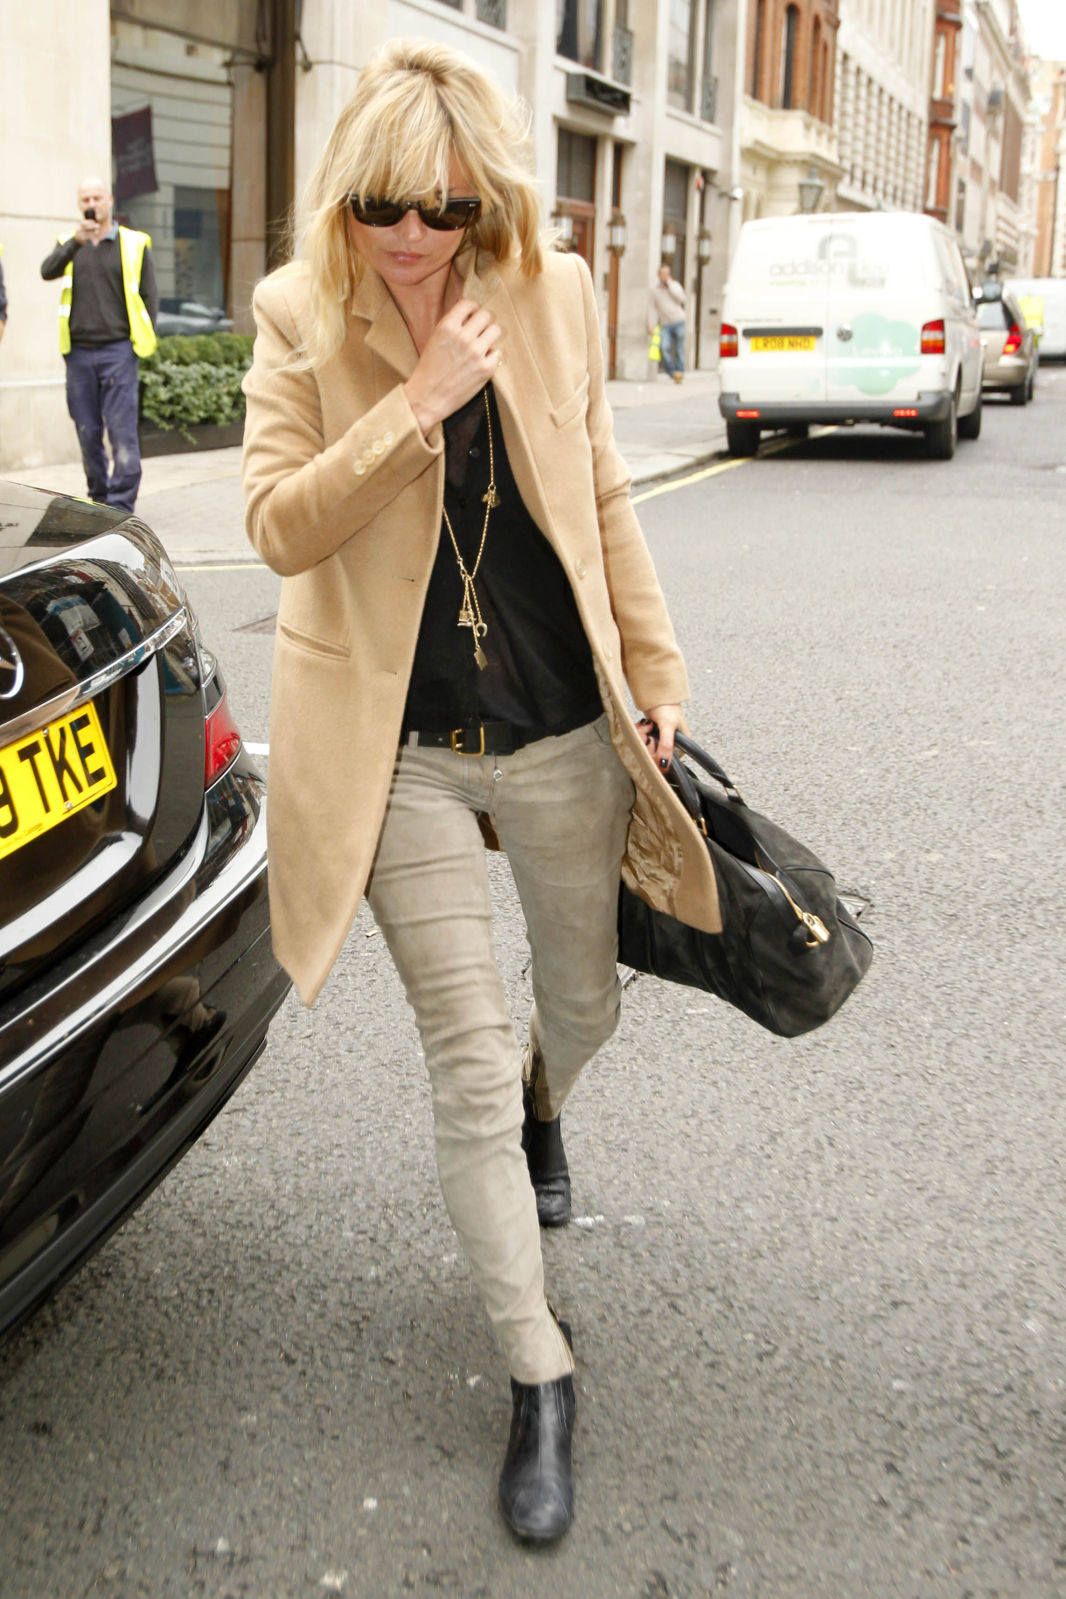 http://2.bp.blogspot.com/-AjdmXCA0kls/UFDR-uhWgcI/AAAAAAAAB0c/MZOAyUMAE3w/s1600/kate+moss_camel+trench+coat_skinny+jeans_gold+necklace.jpg